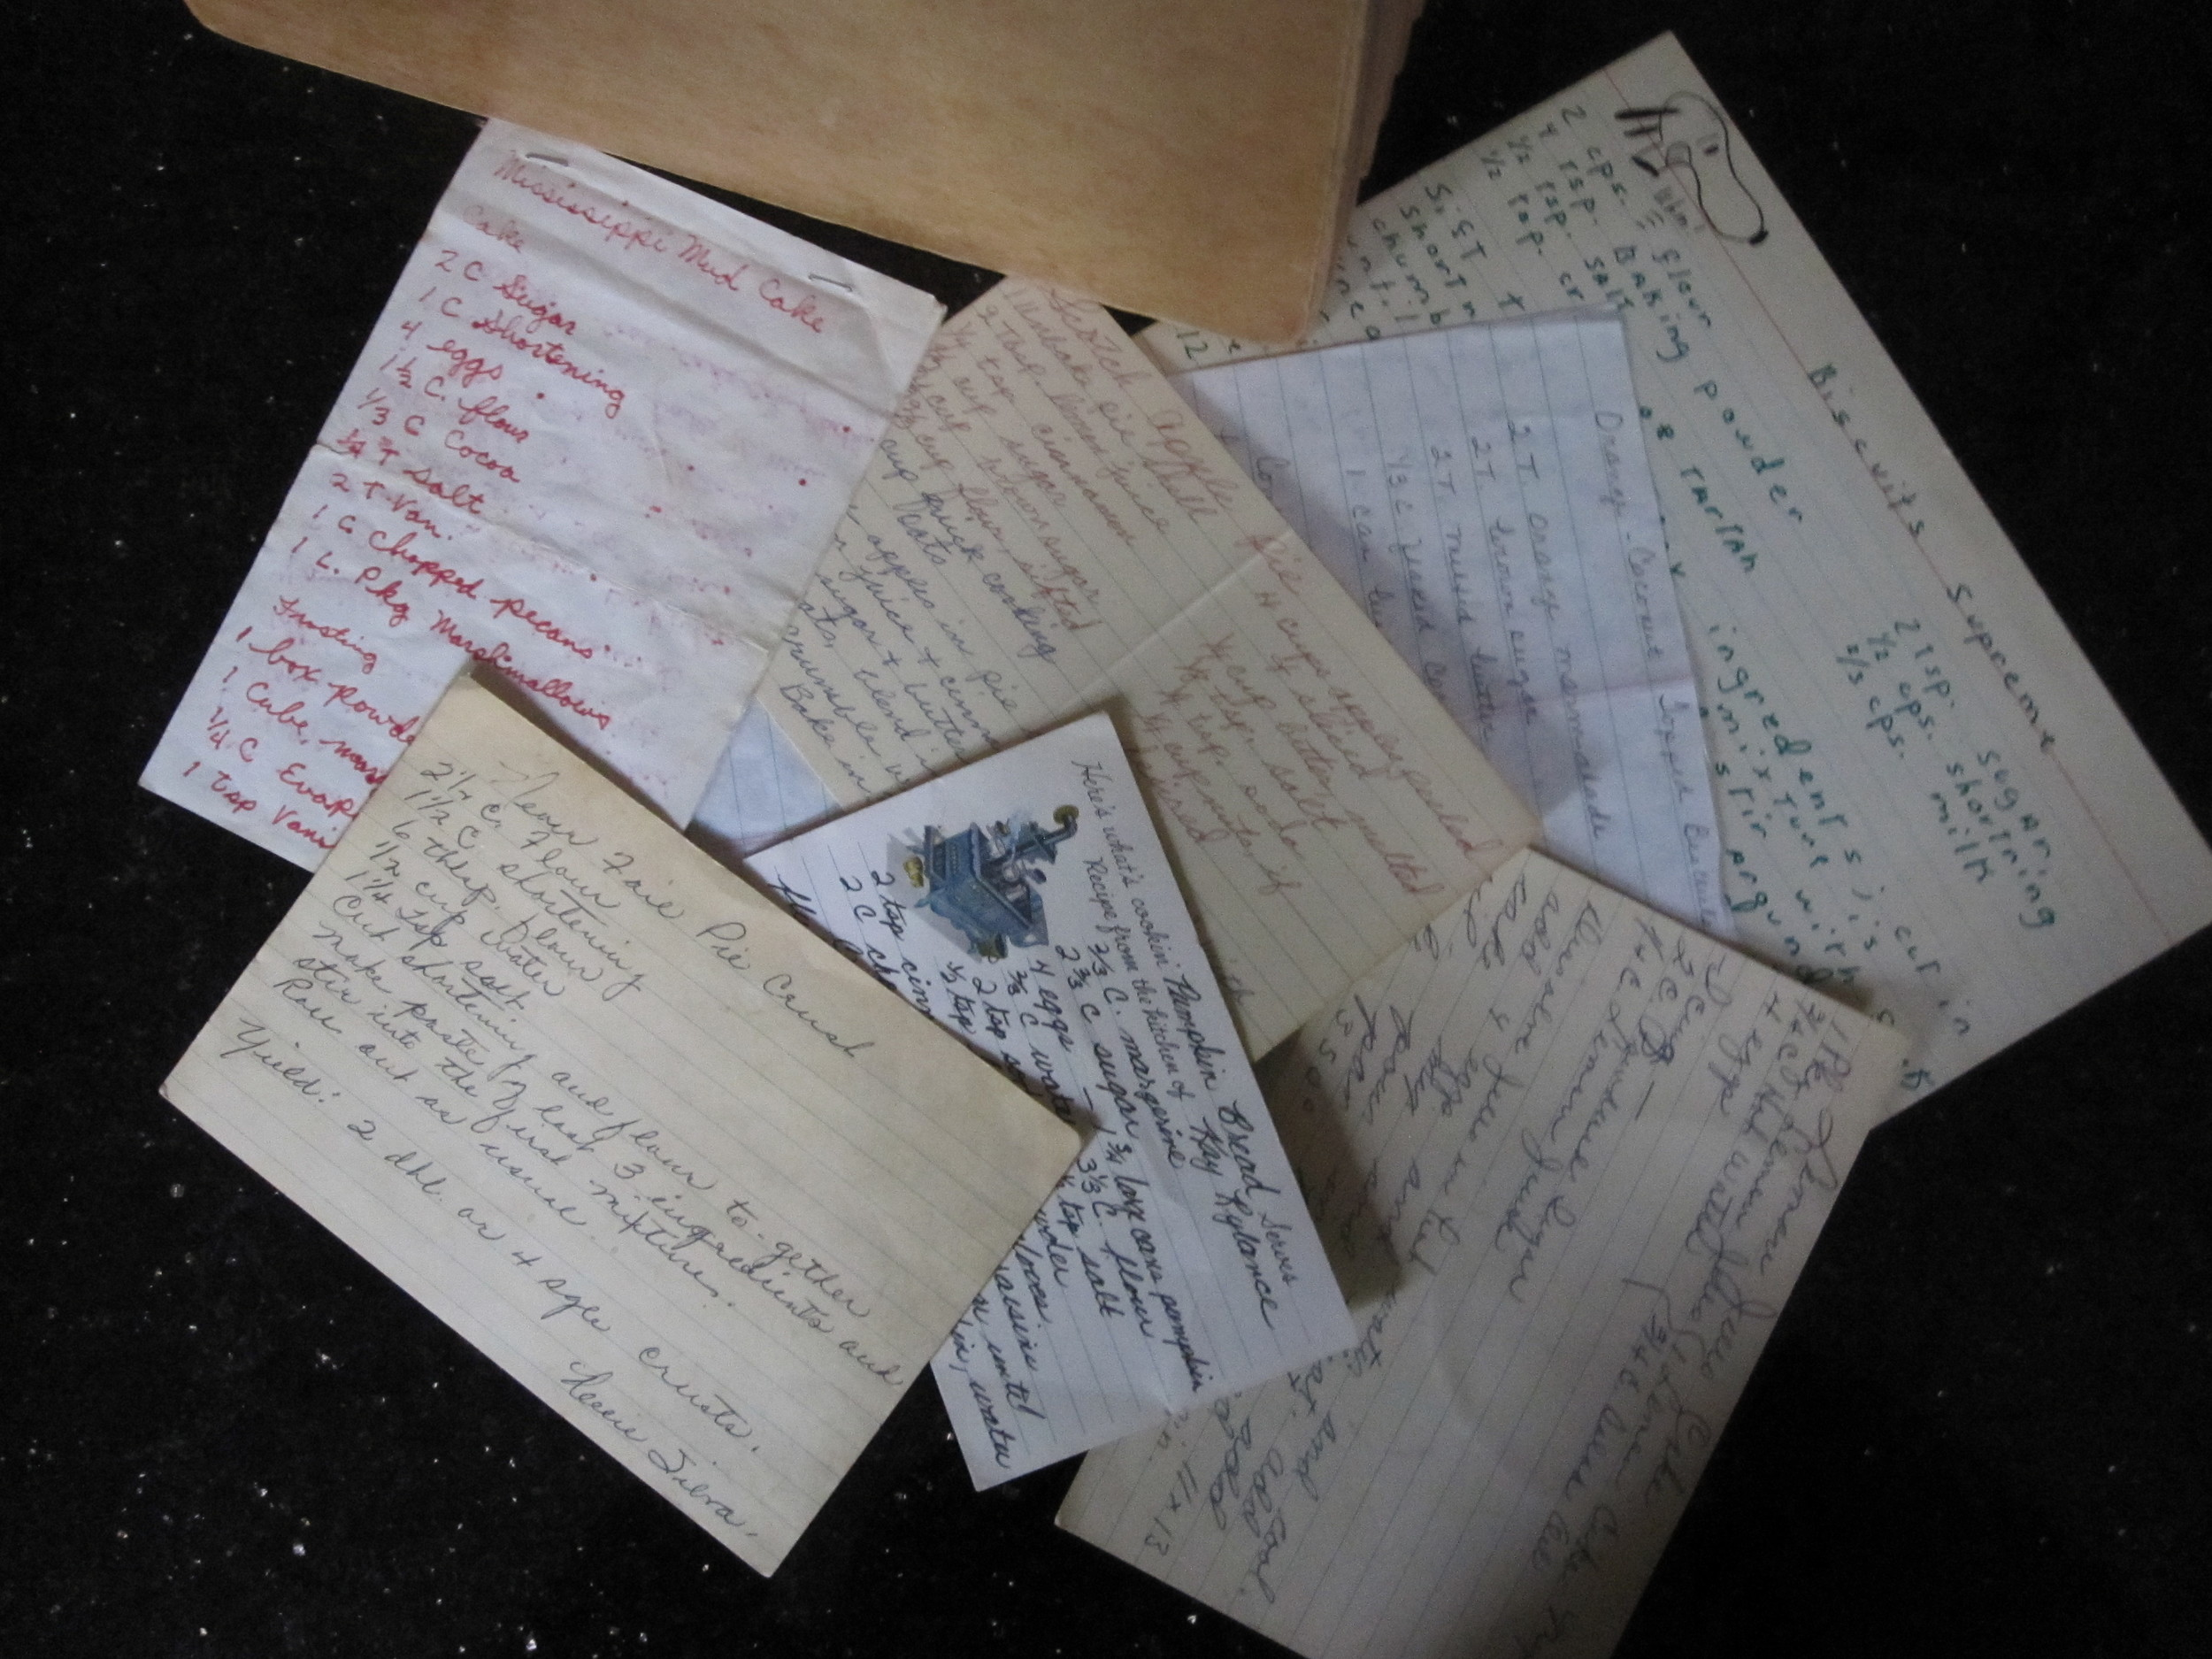 Hand written recipes are pure gold. A smudge of chocolate here, a crusty bit there, memories of the dear ones who wrote them on every card.